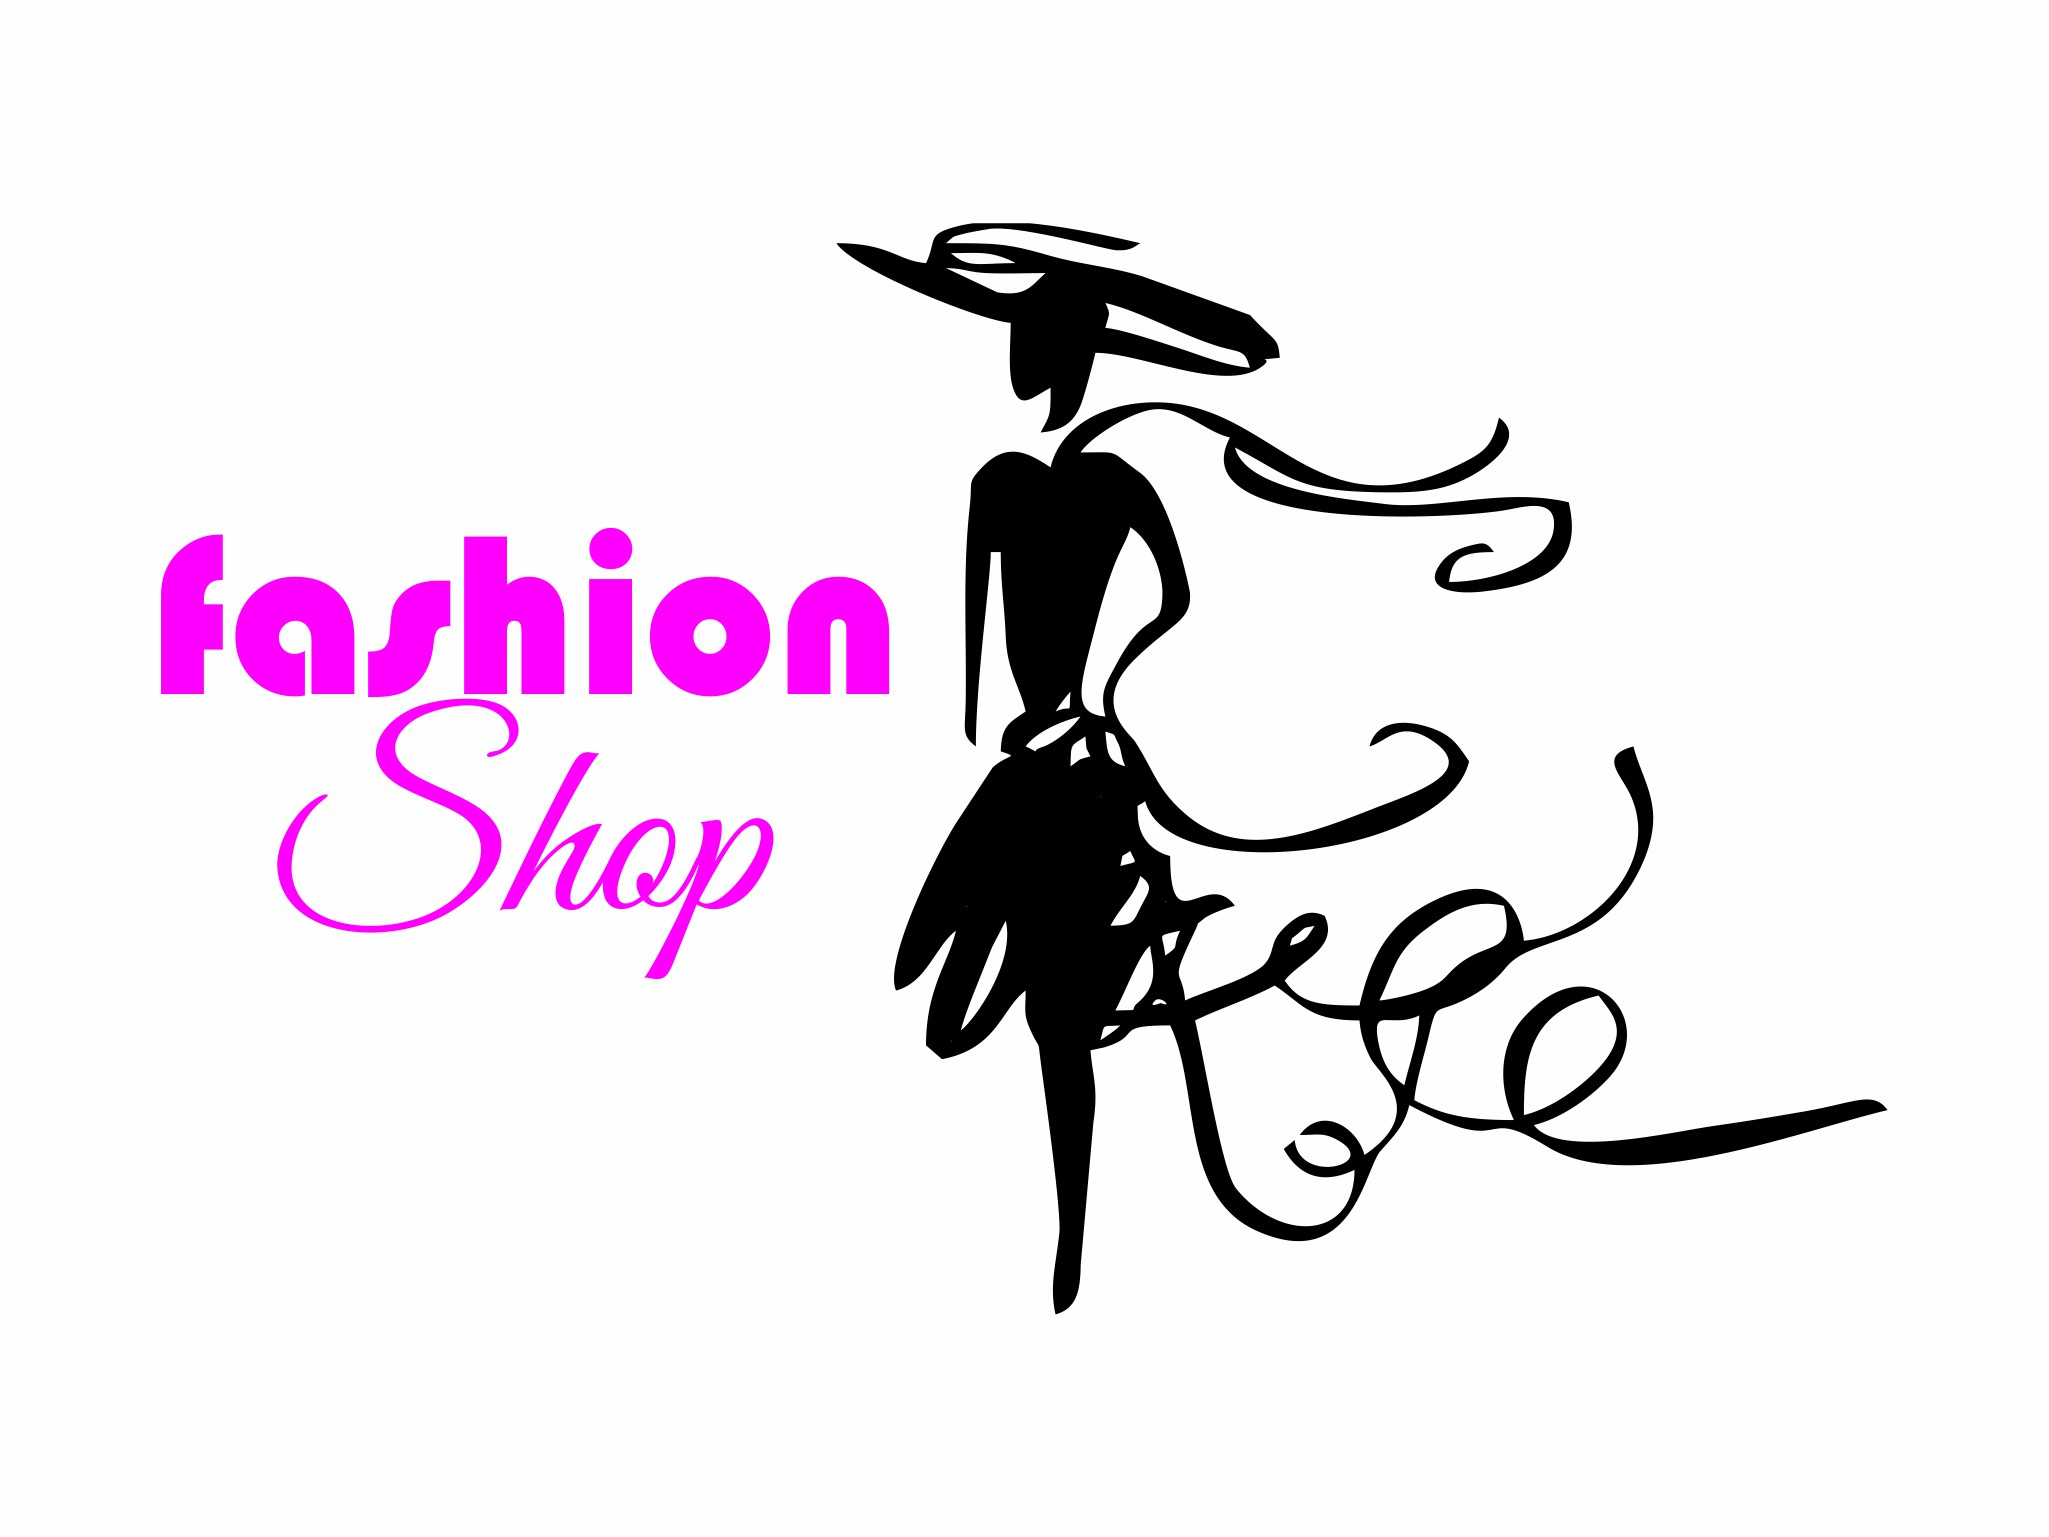 logo fashion shop